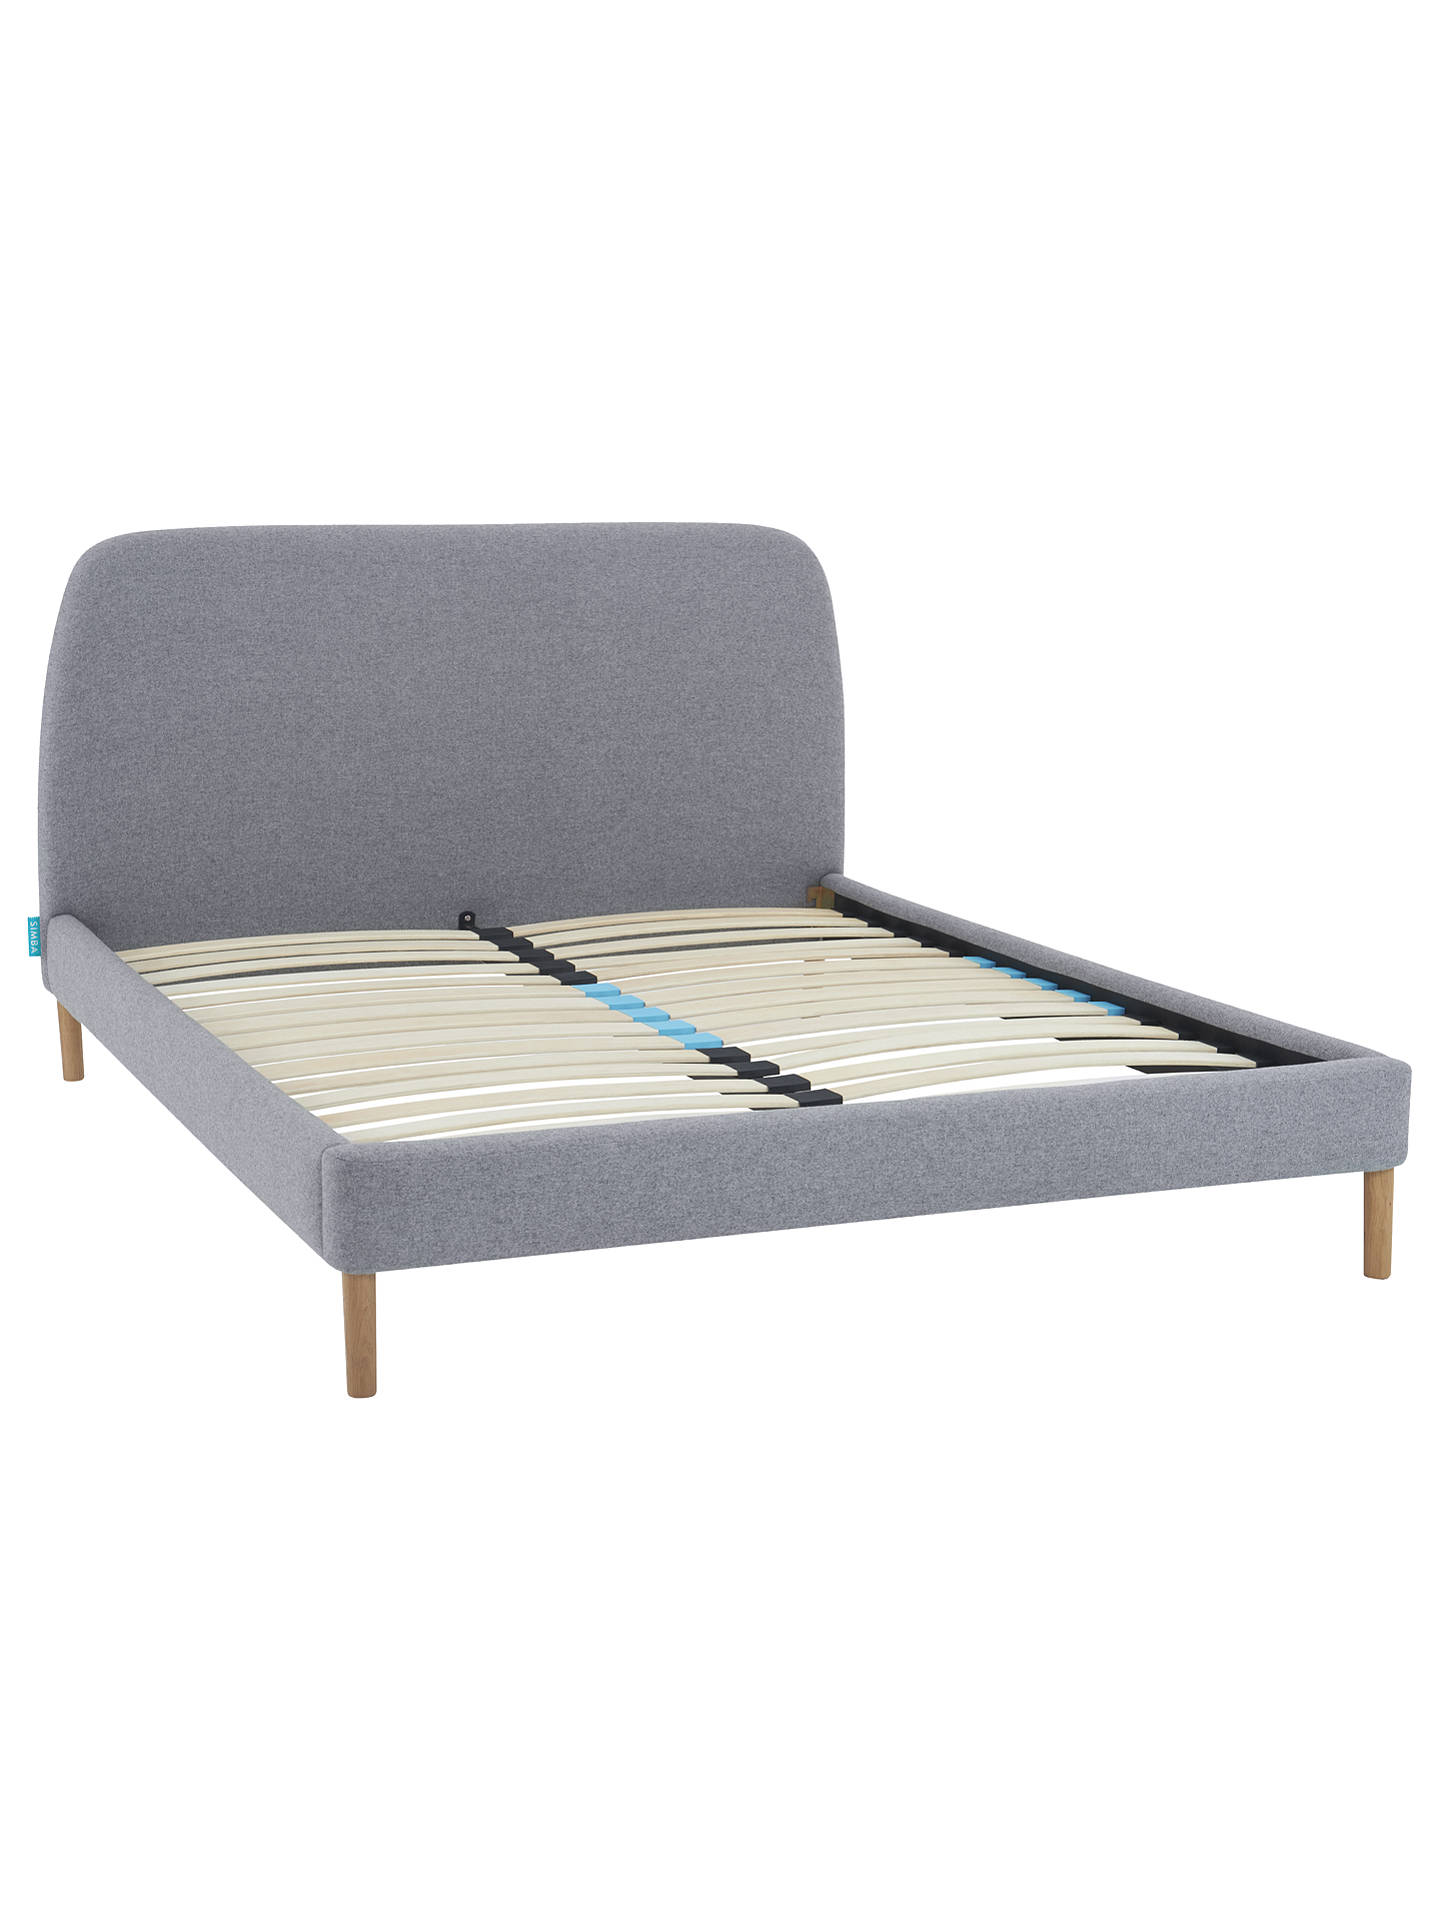 Simba Hybrid Upholstered Bed Frame With Headboard Super King Size